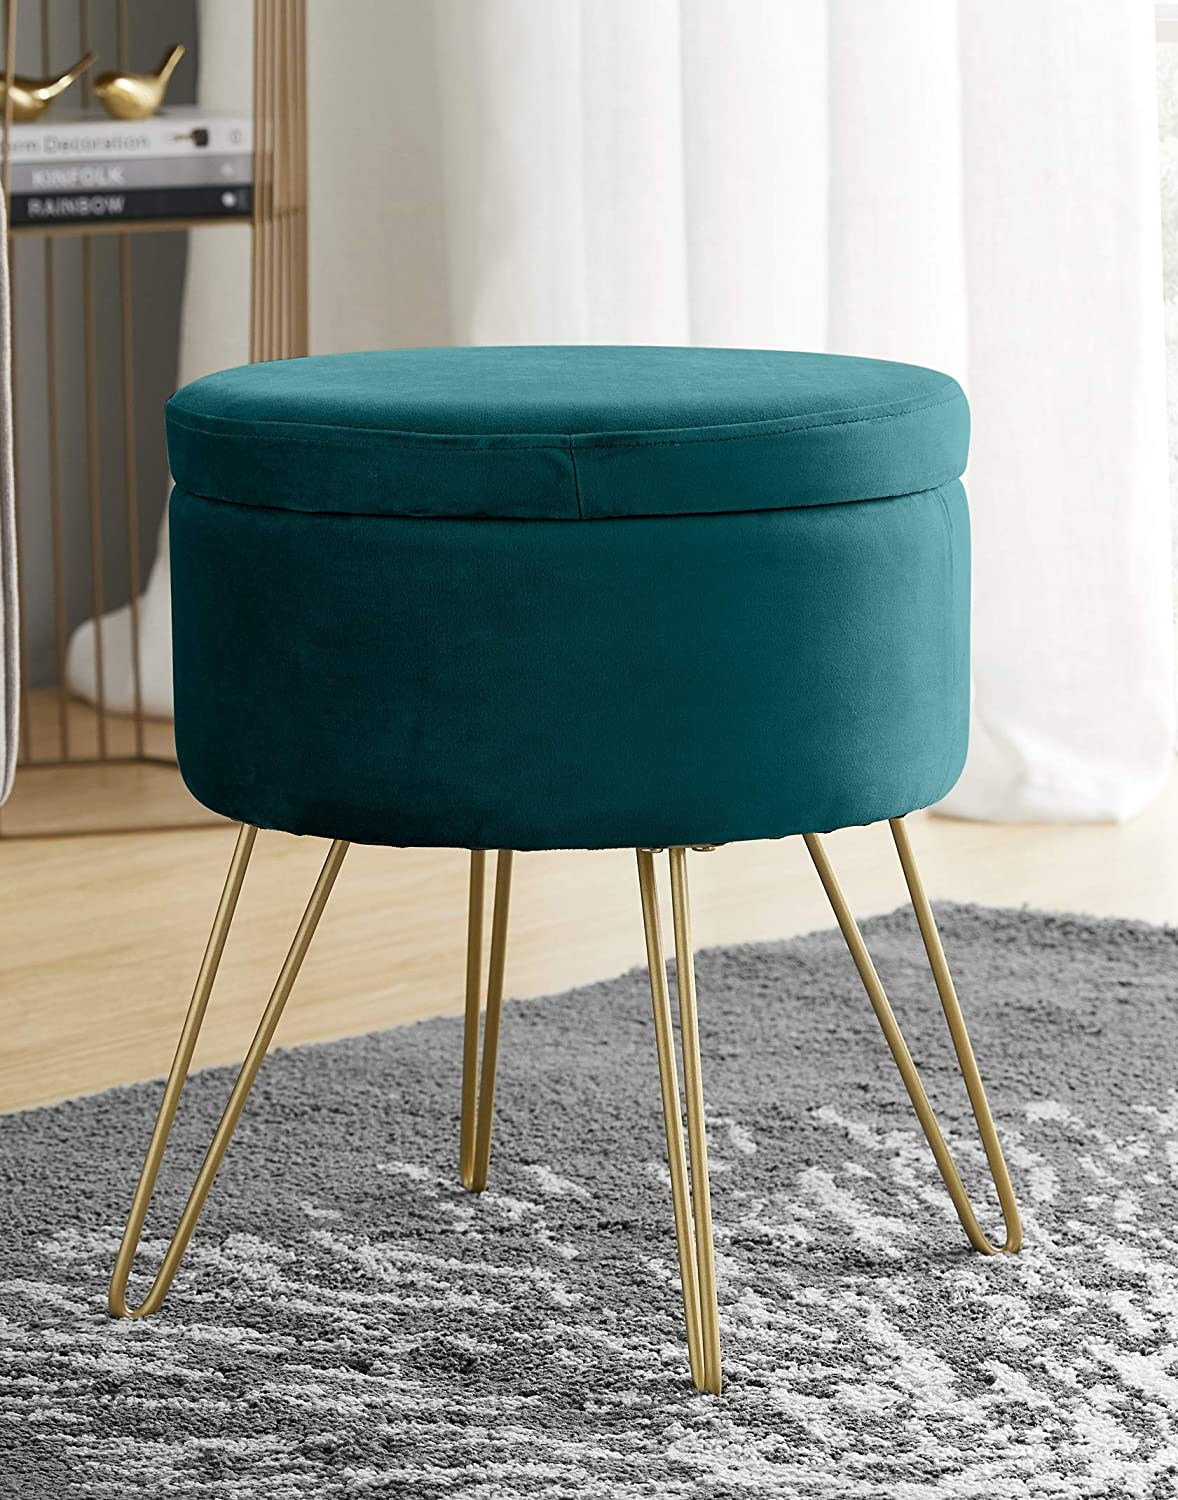 Ornavo Home Modern Round Velvet Storage Ottoman Foot Rest Stool/Seat with Gold Metal Legs & Tray Top Coffee Table - Teal